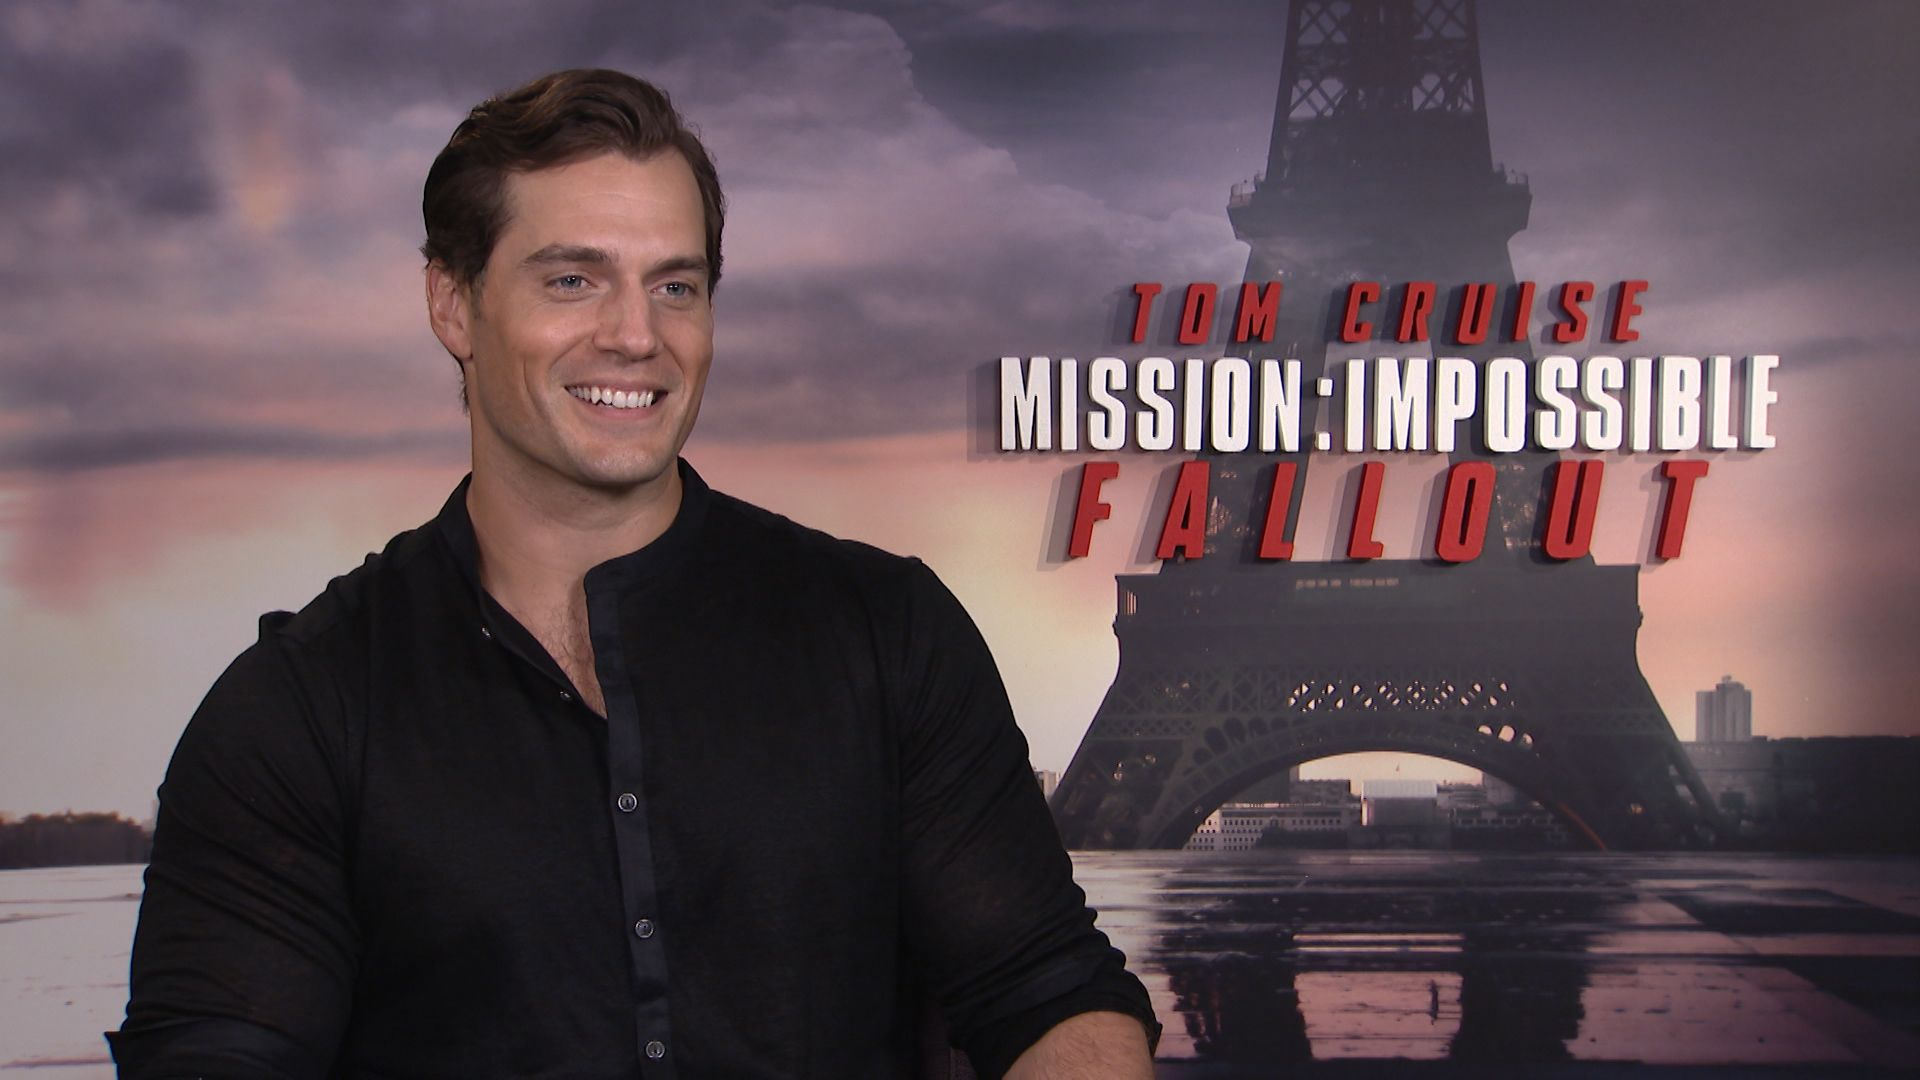 Henry Cavill On Mission Impossible Fallout Tom Cruise